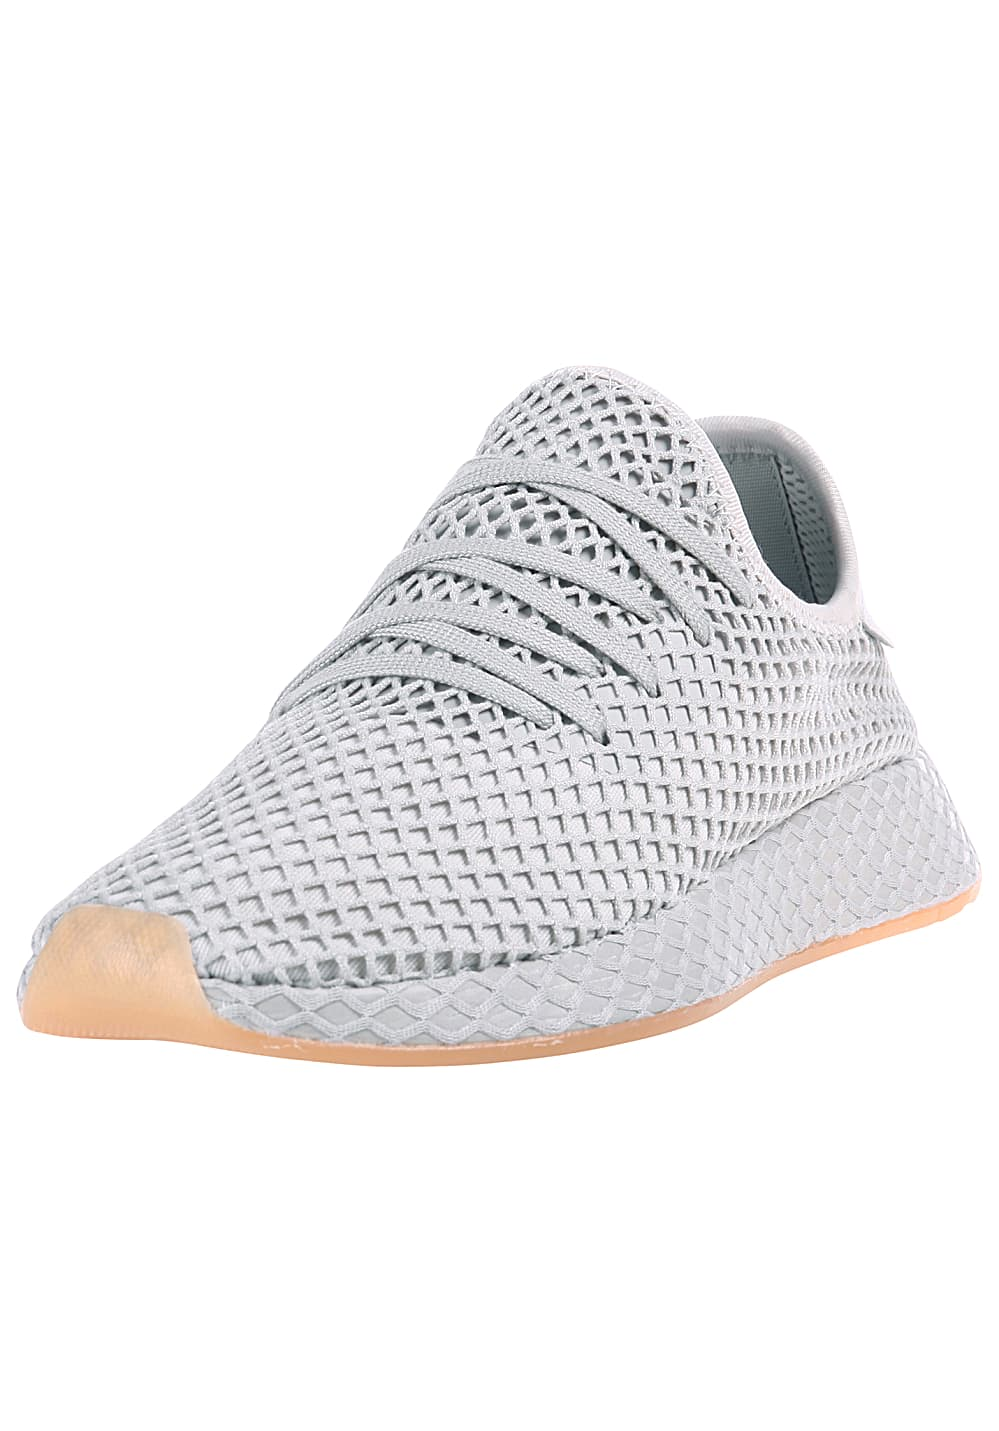 best loved 3d1e9 0971f Next. -20%. ADIDAS ORIGINALS. Deerupt Runner - Sneakers for Men